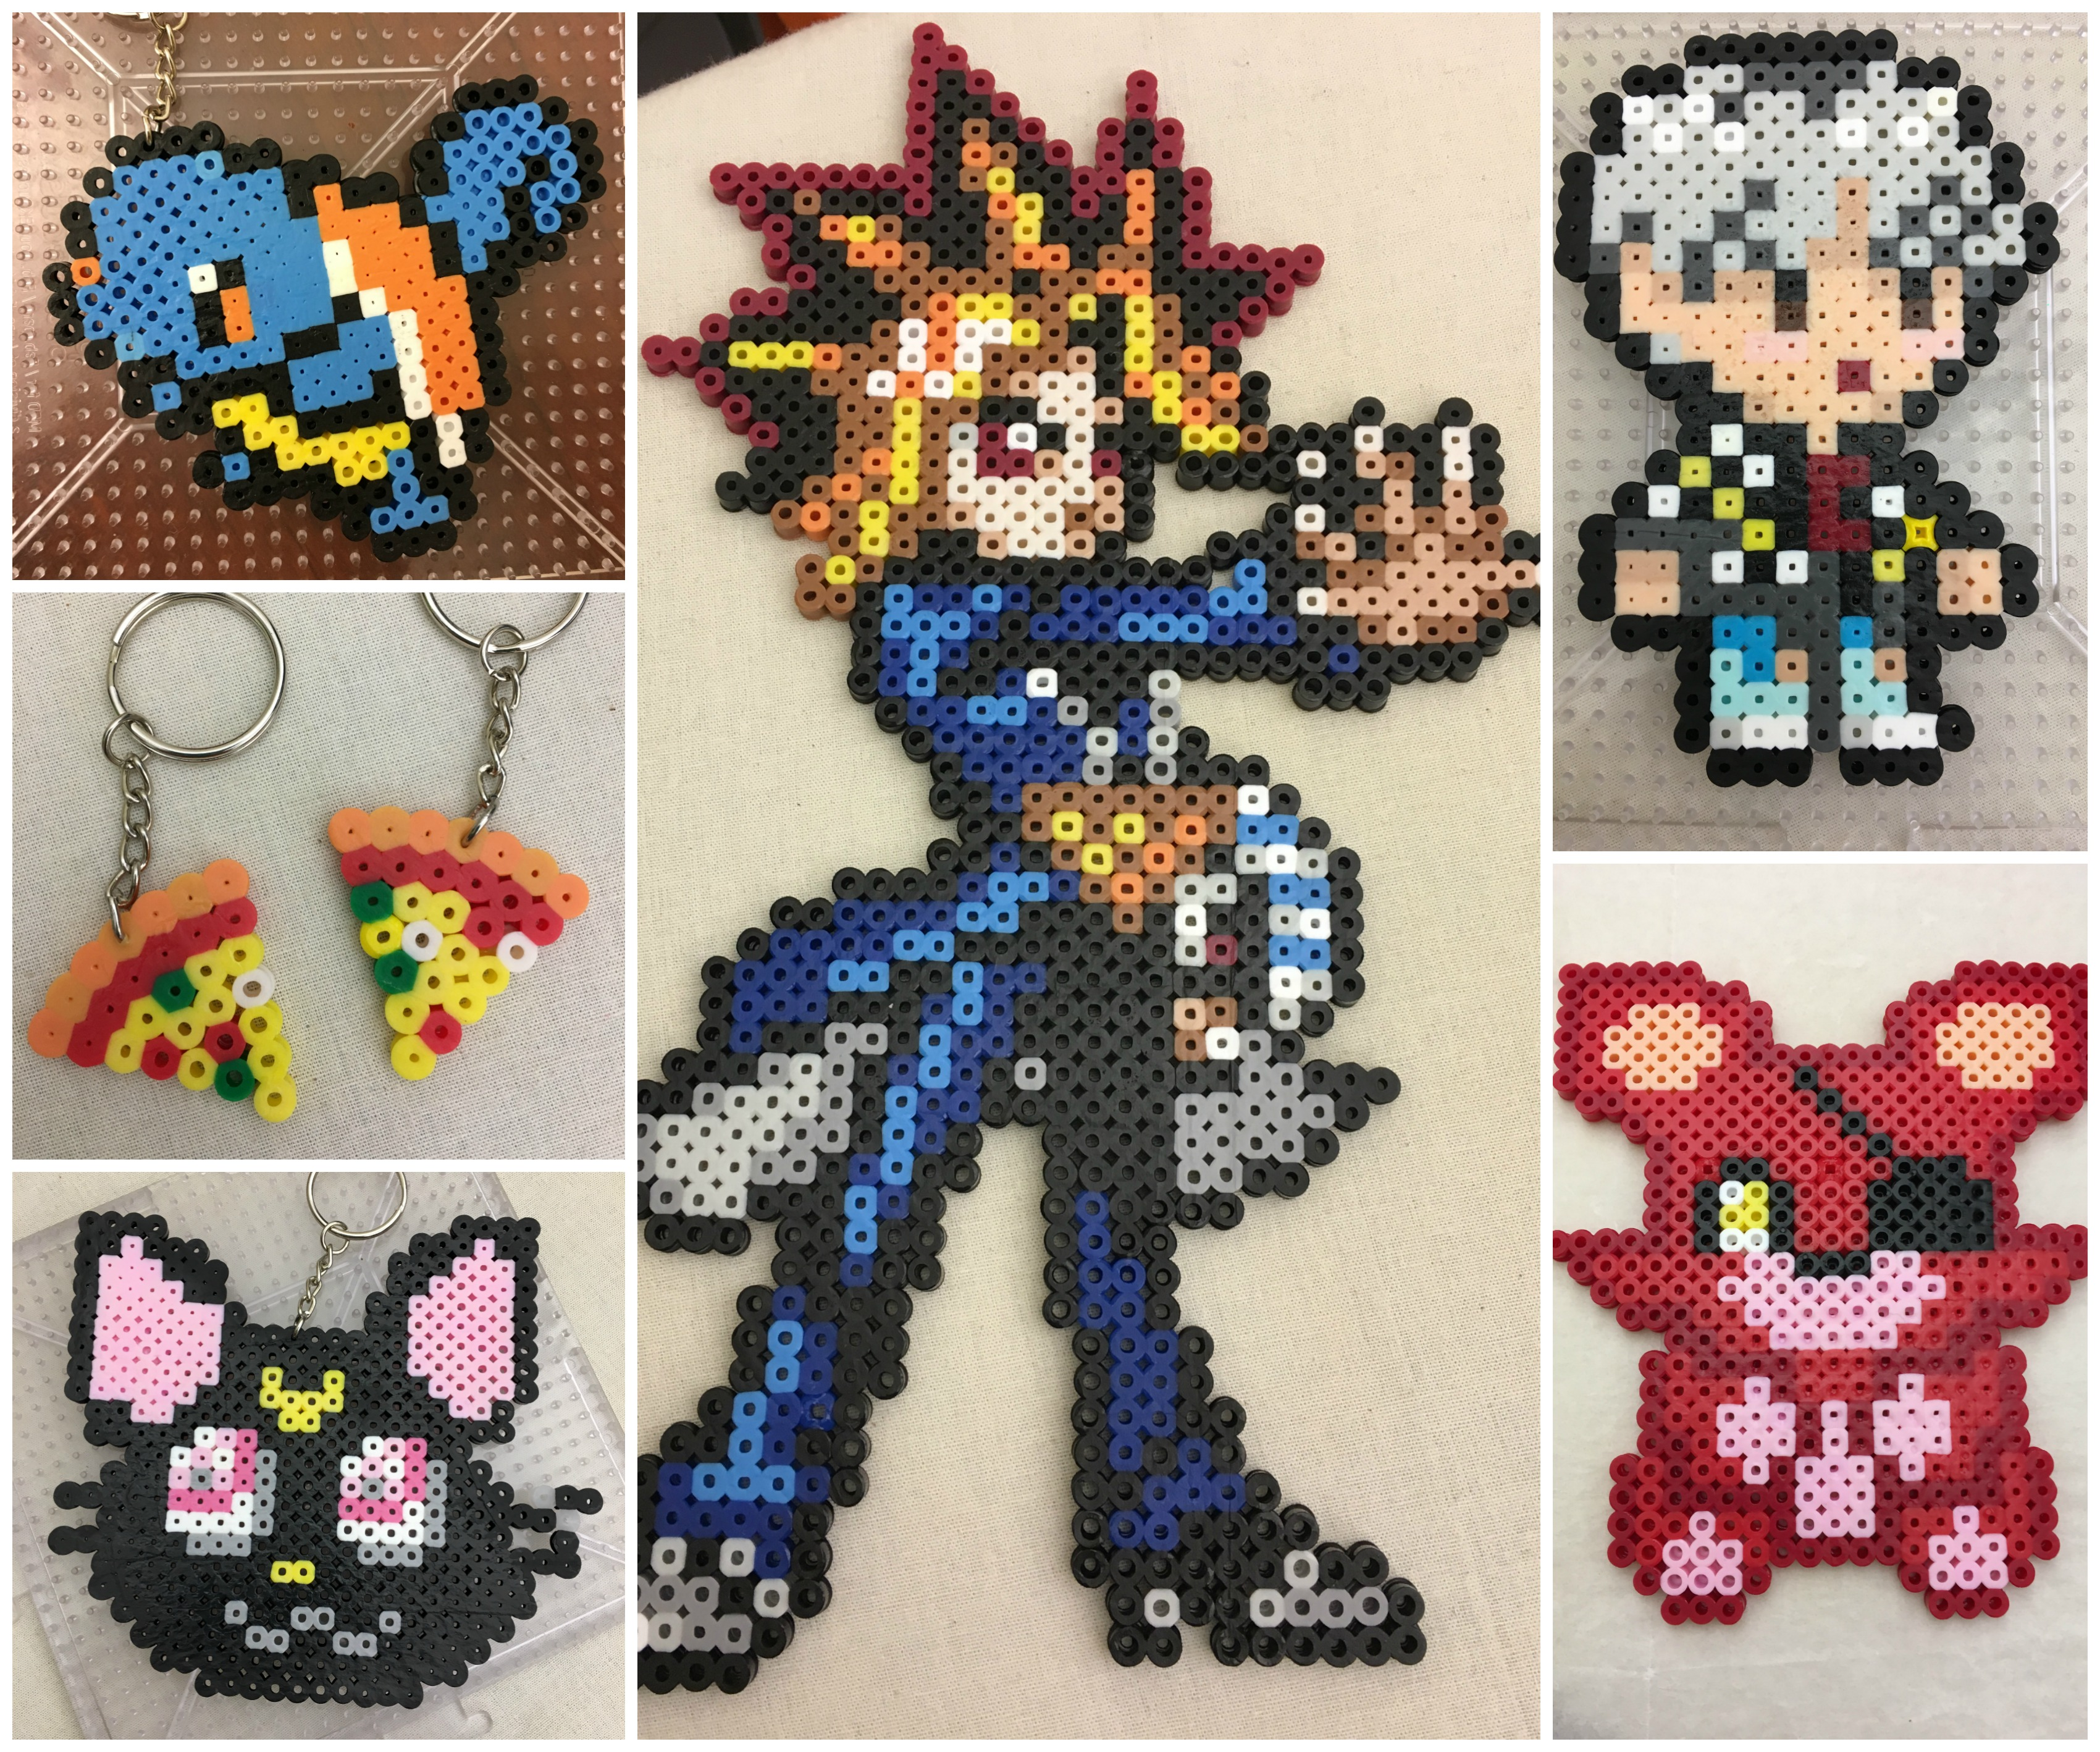 Collage of pixel art projects made by teens